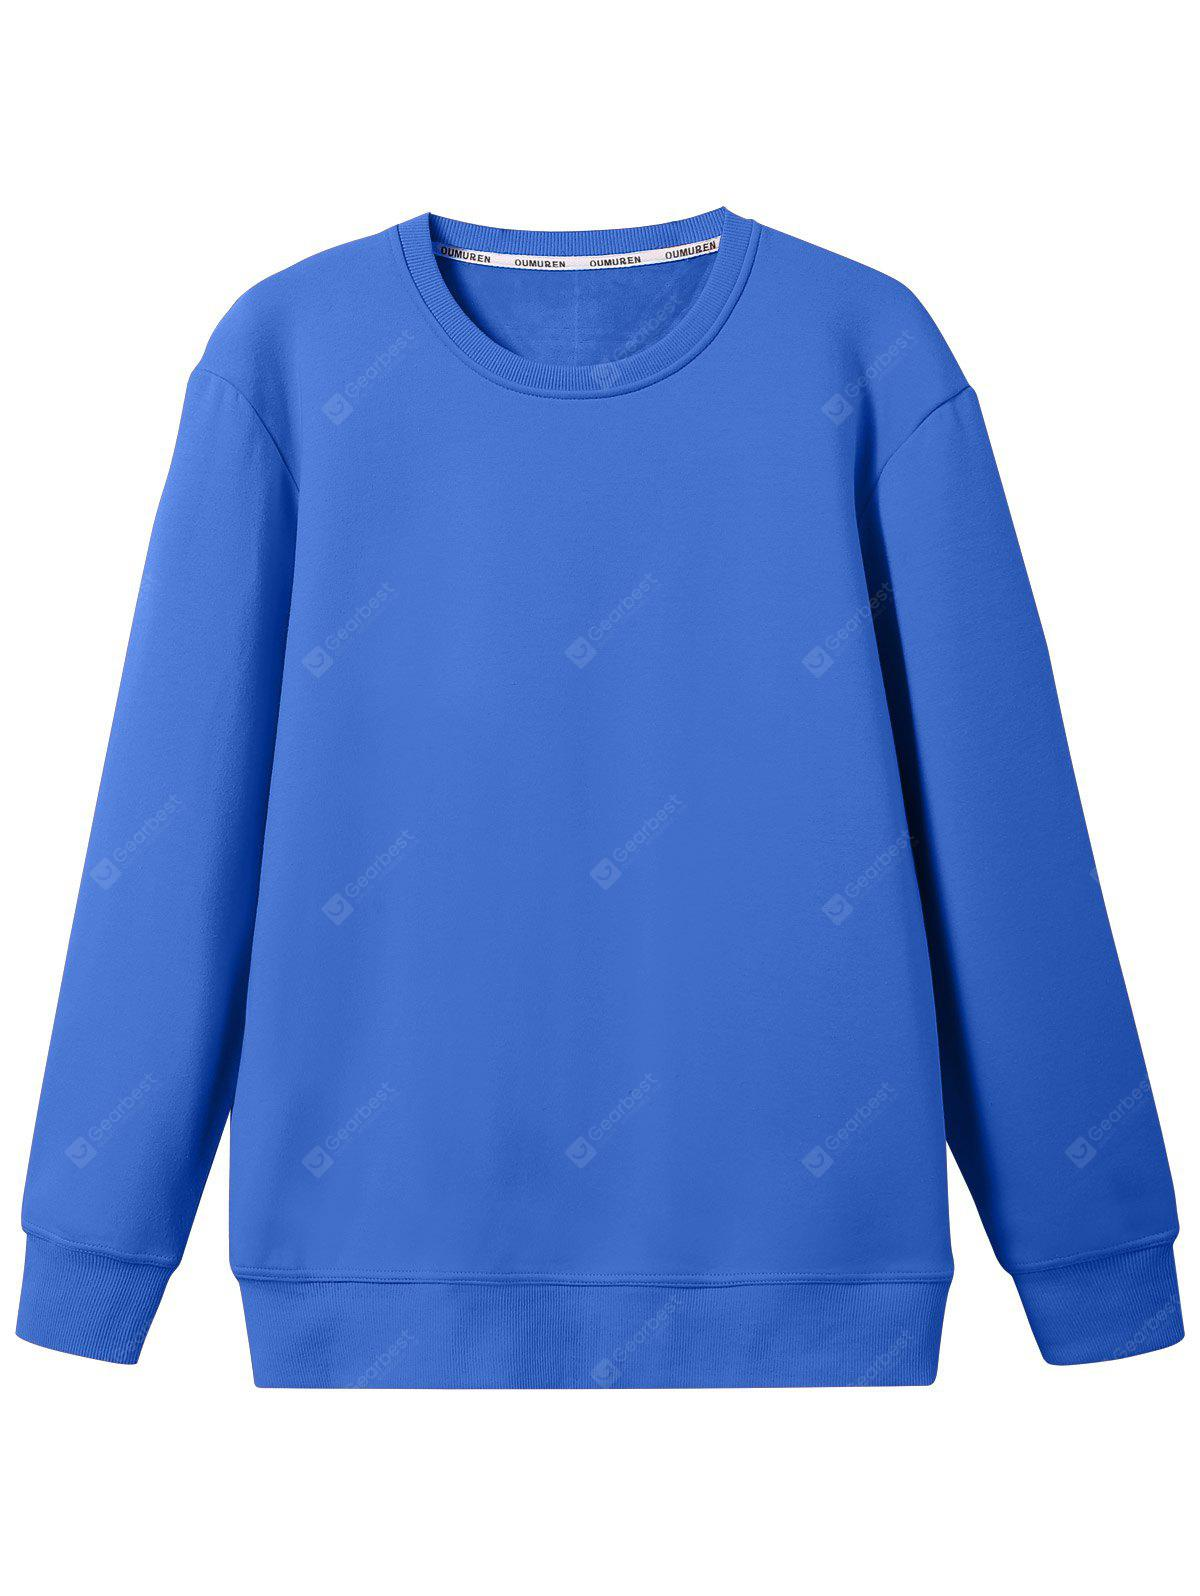 Wool Blend Mens Sweatshirt